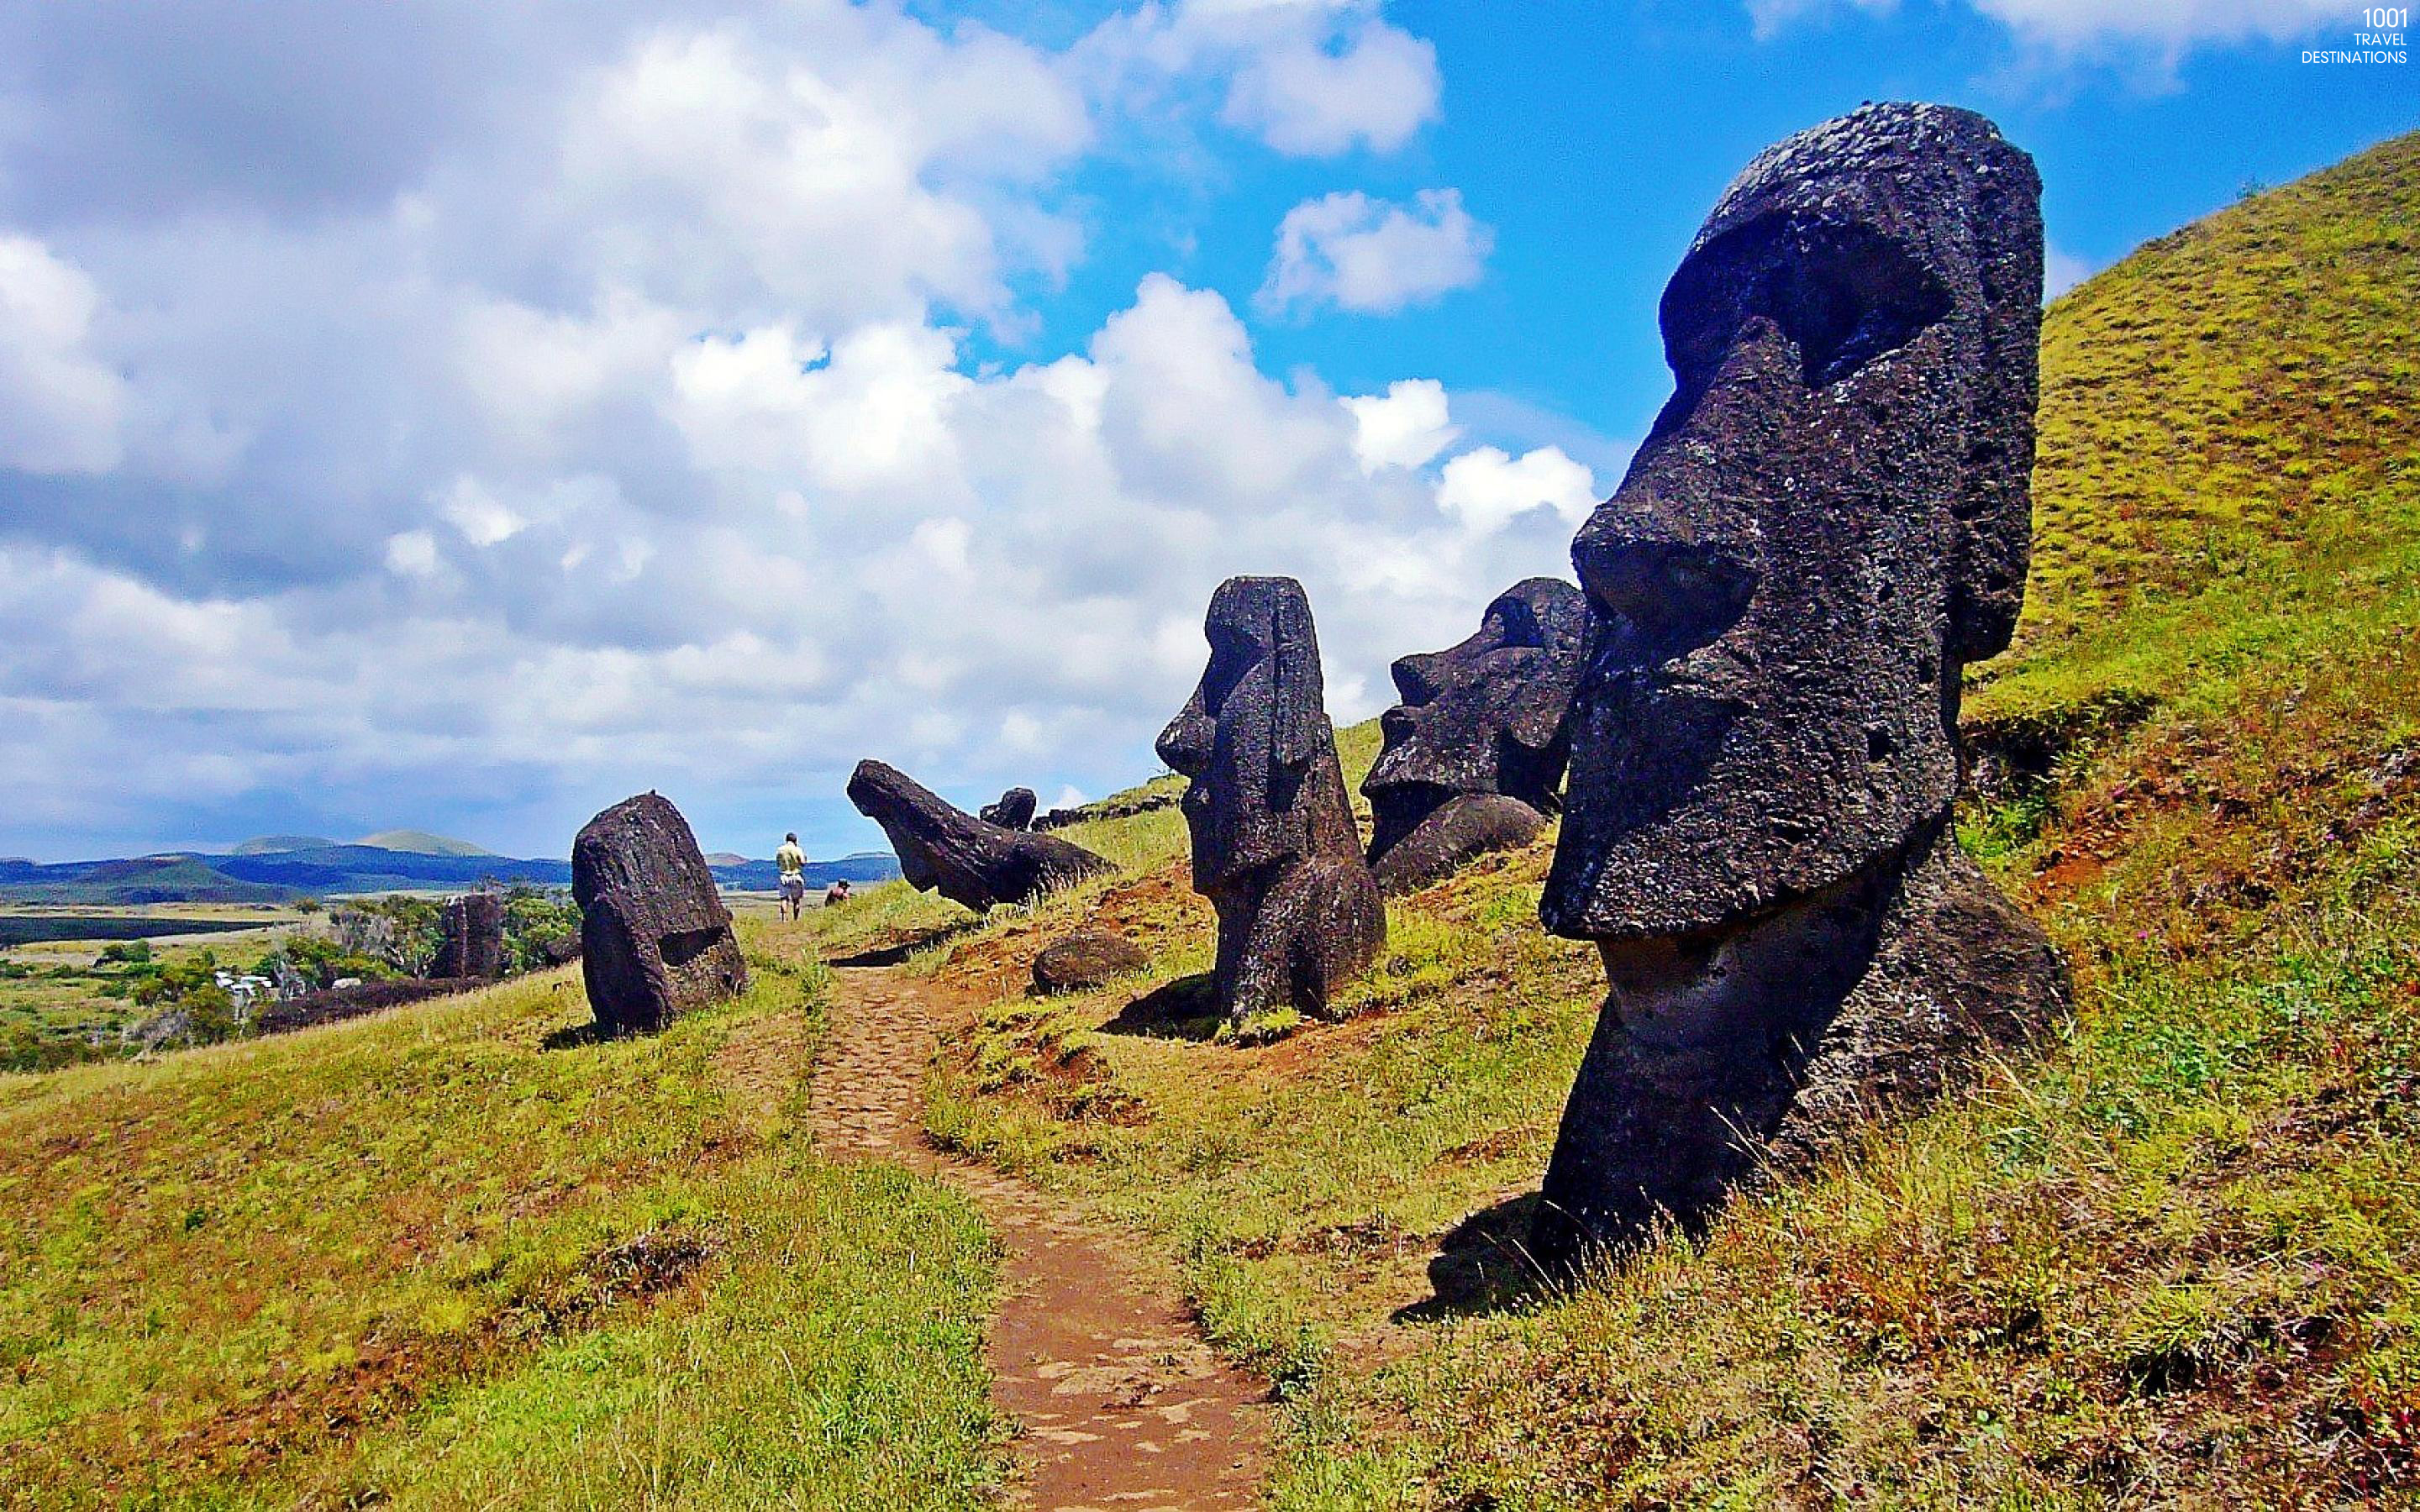 0006 Easter Island Chile 1001 Travel Destinations 2880x1800